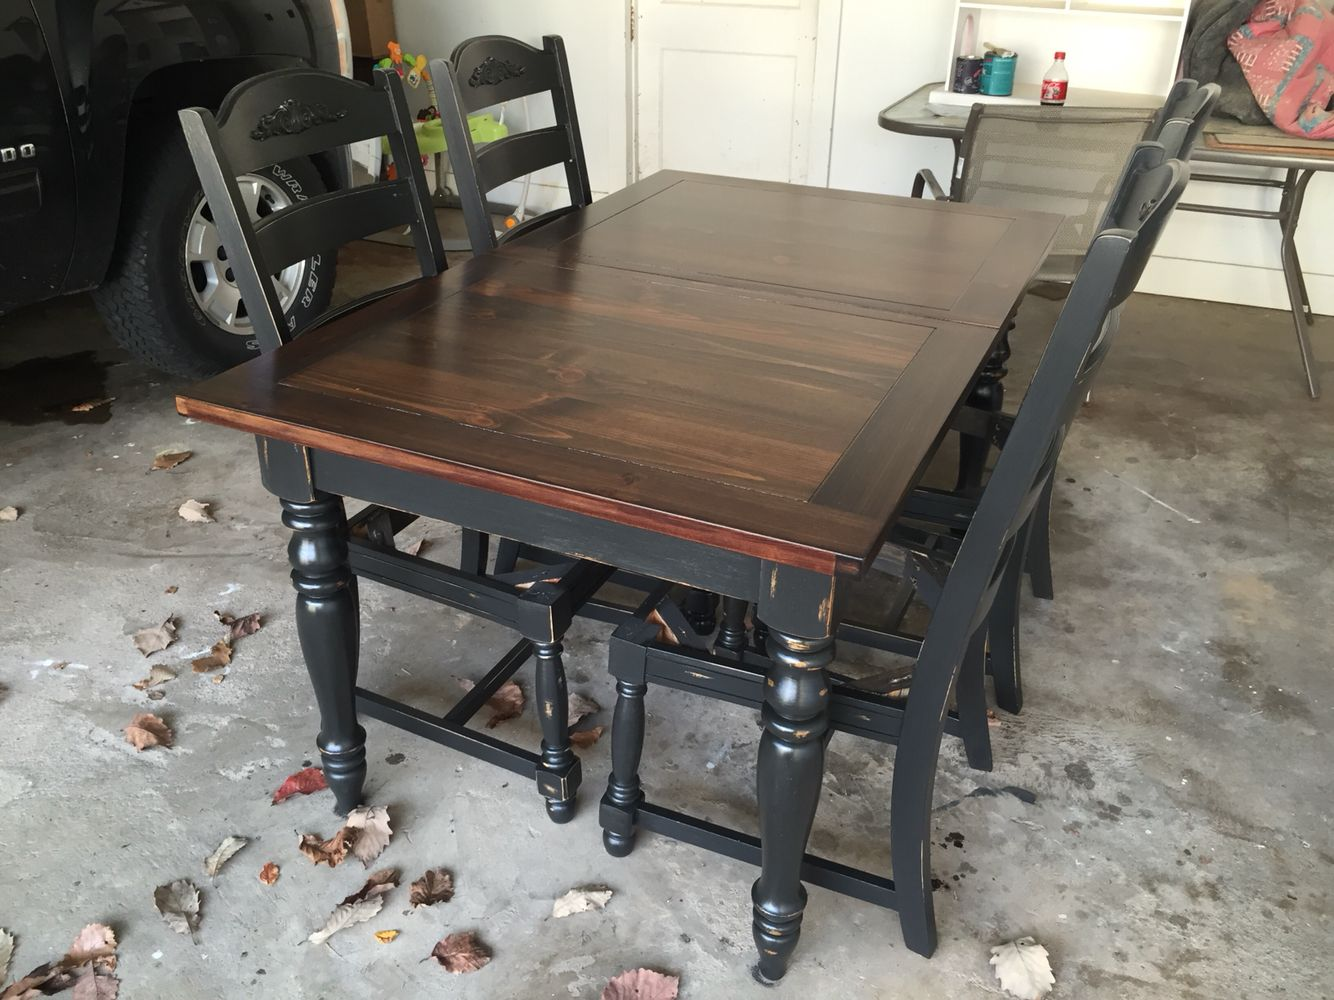 painted oak table refinish kitchen table Refinished oak table base and chairs chalk painted Black Velvet and sealed with polycrylic